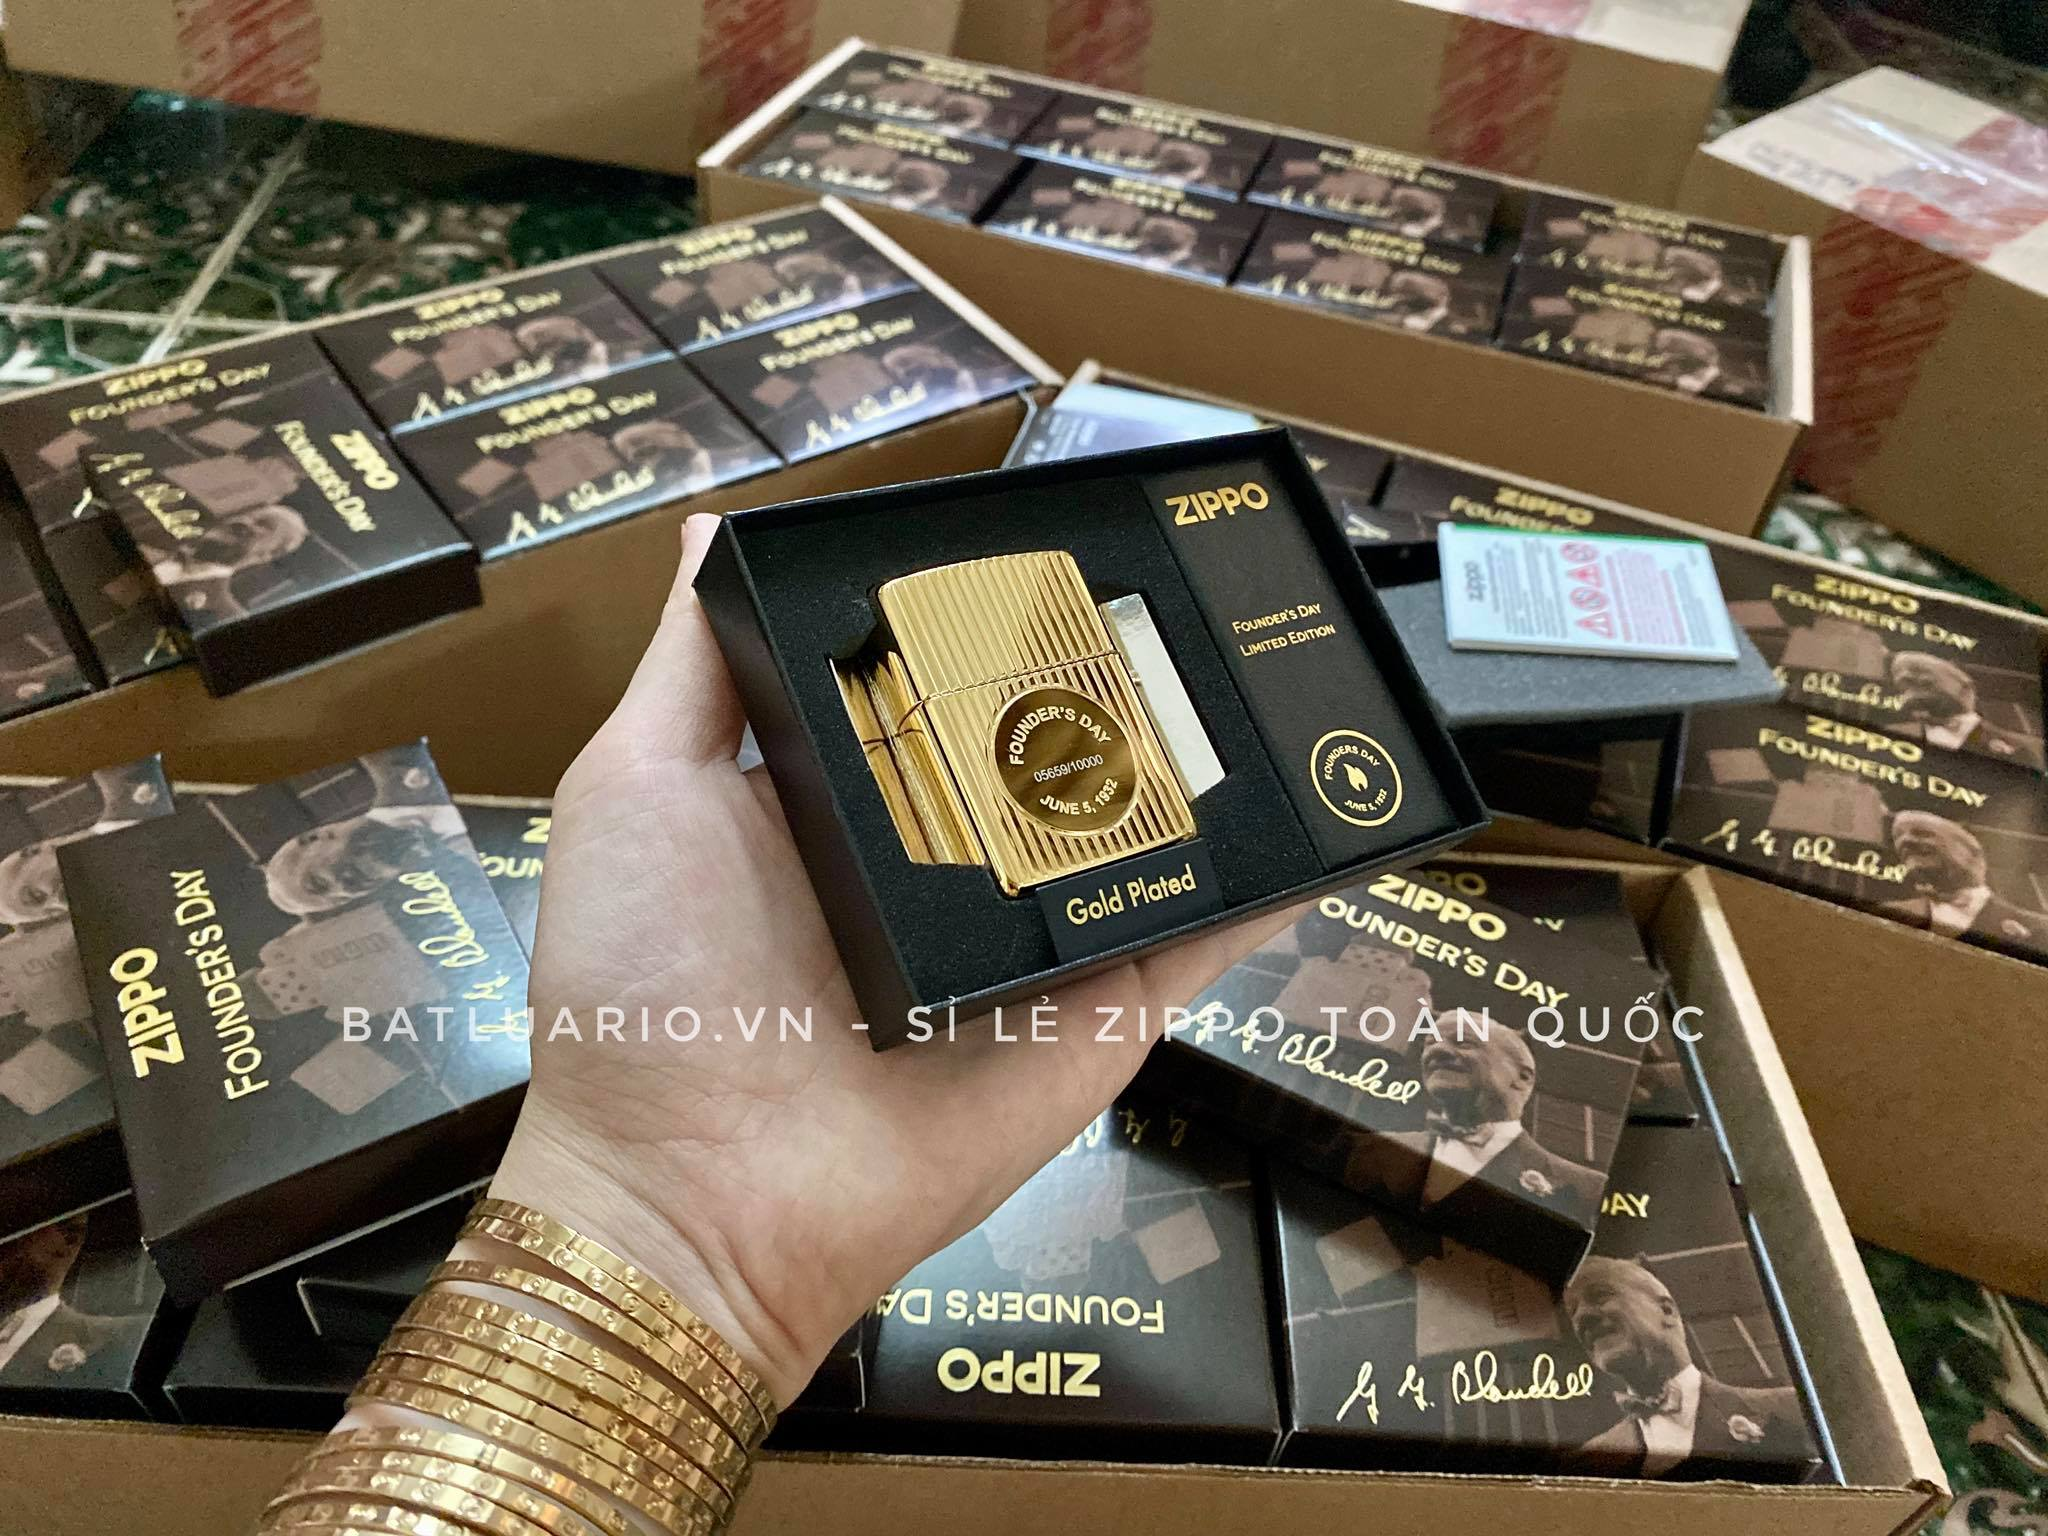 Zippo 49631 - Zippo Founder's Day 2021 Gold Plated Edition Collectible 14